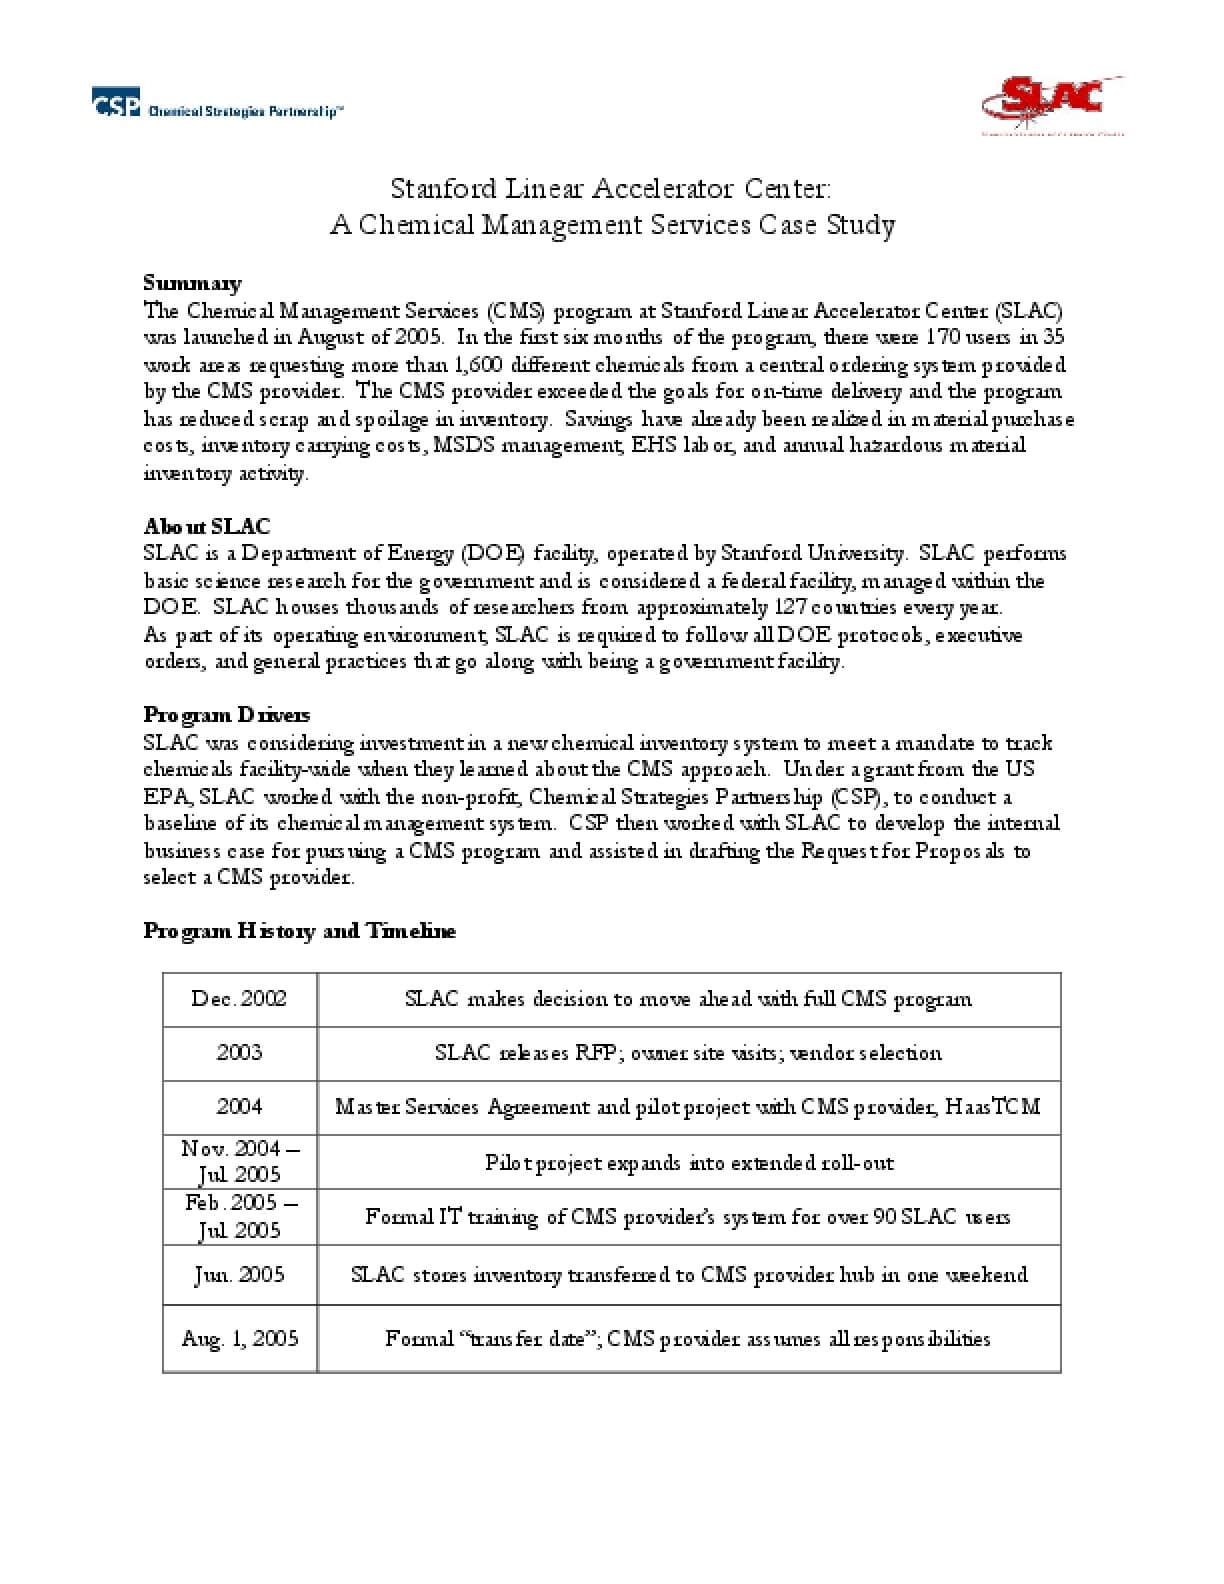 Stanford Linear Accelerator Center: A Chemical Management Services Case Study